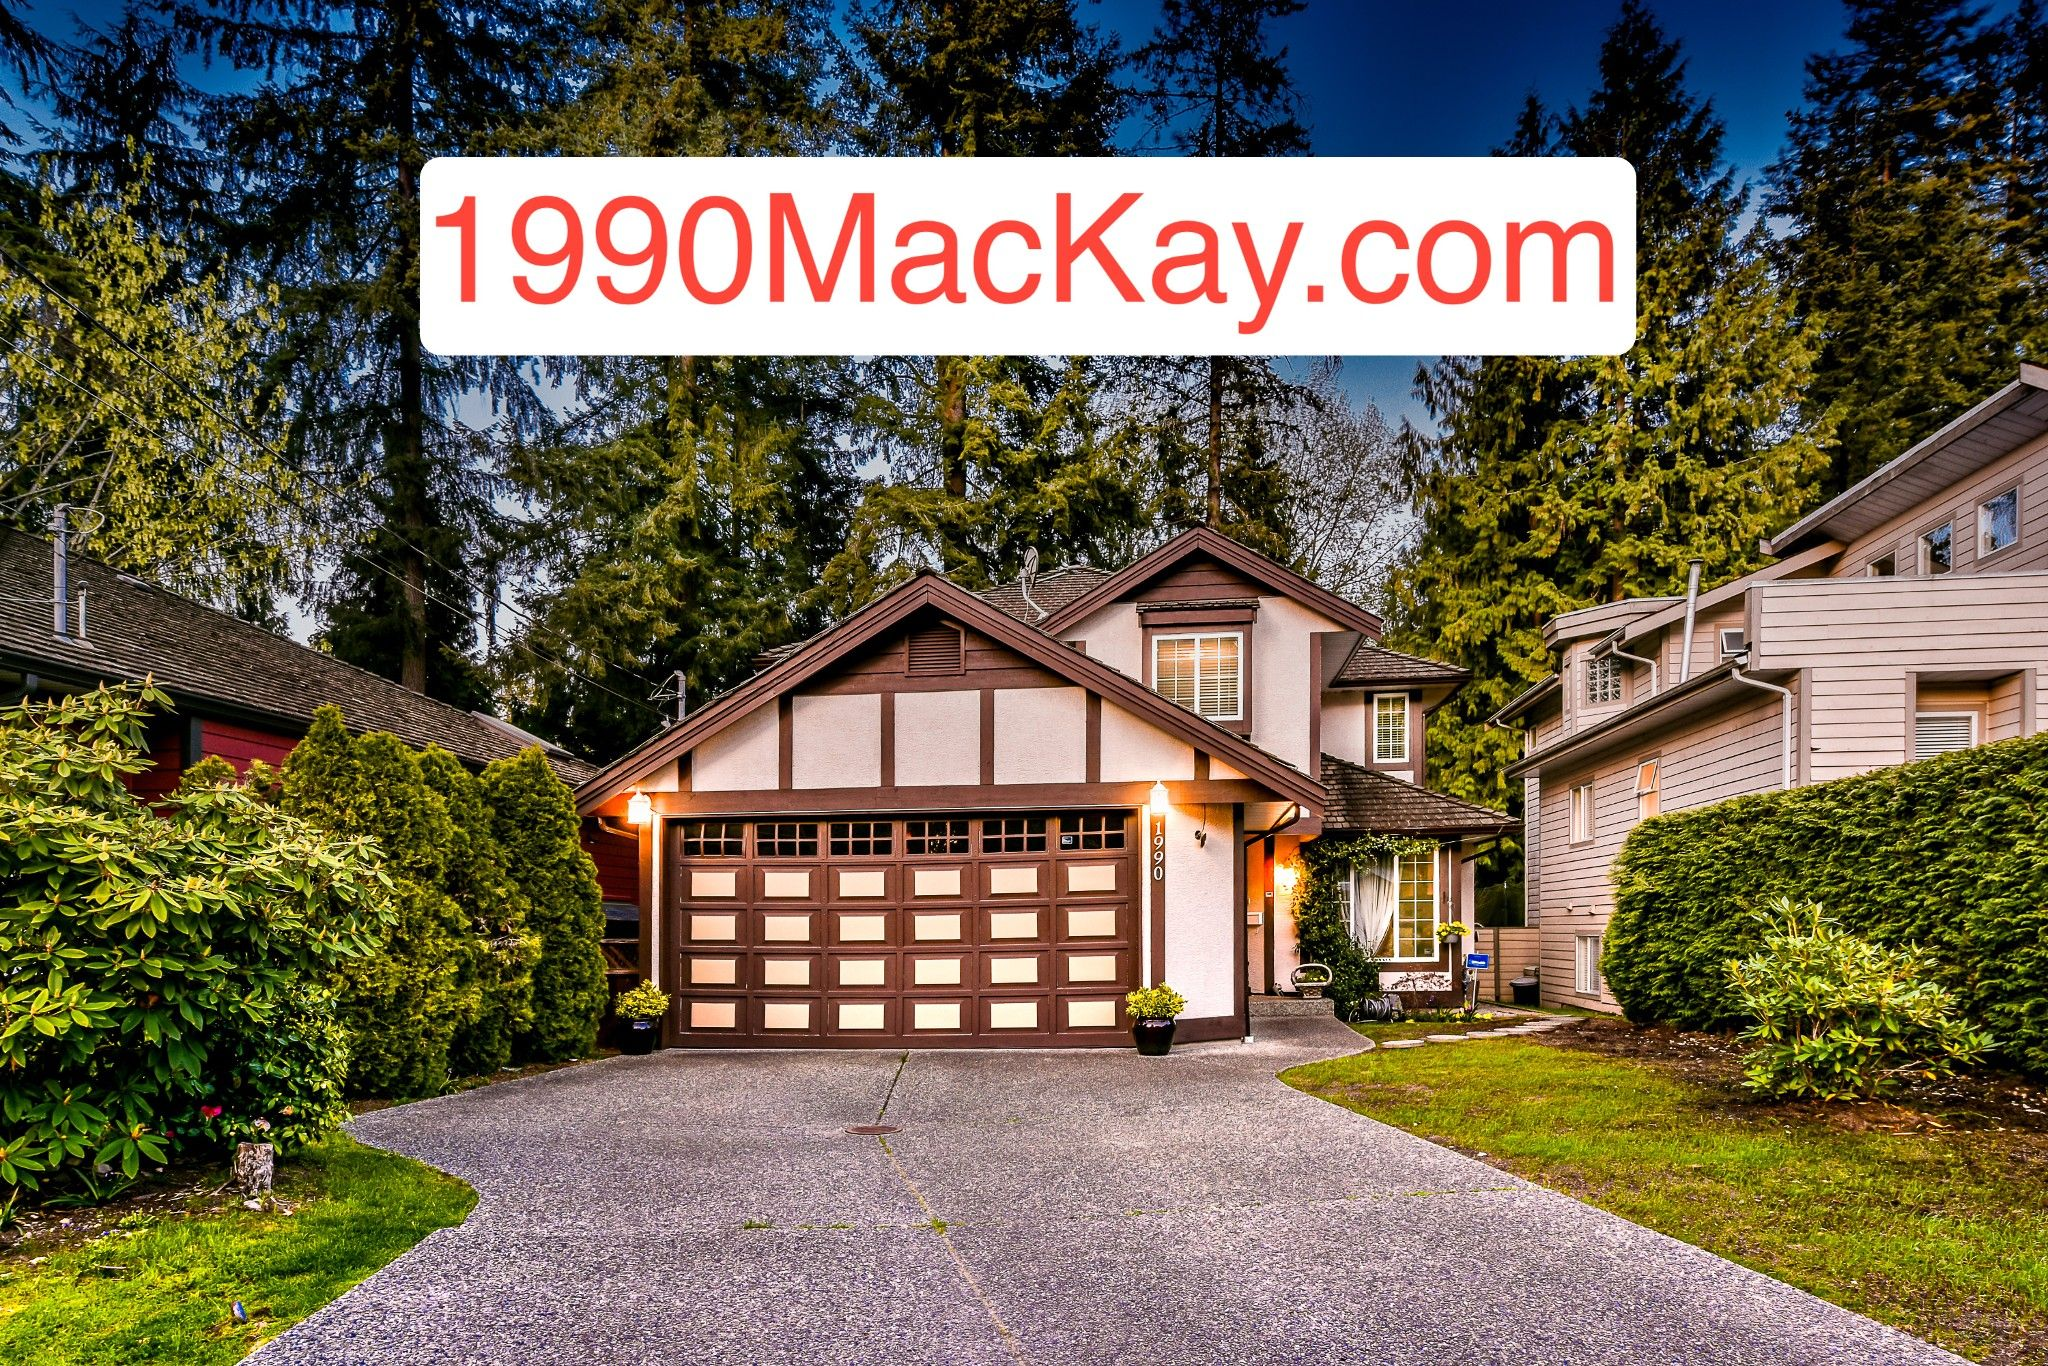 Main Photo: 1990 MACKAY Avenue in North Vancouver: Pemberton Heights House for sale : MLS®# R2345091